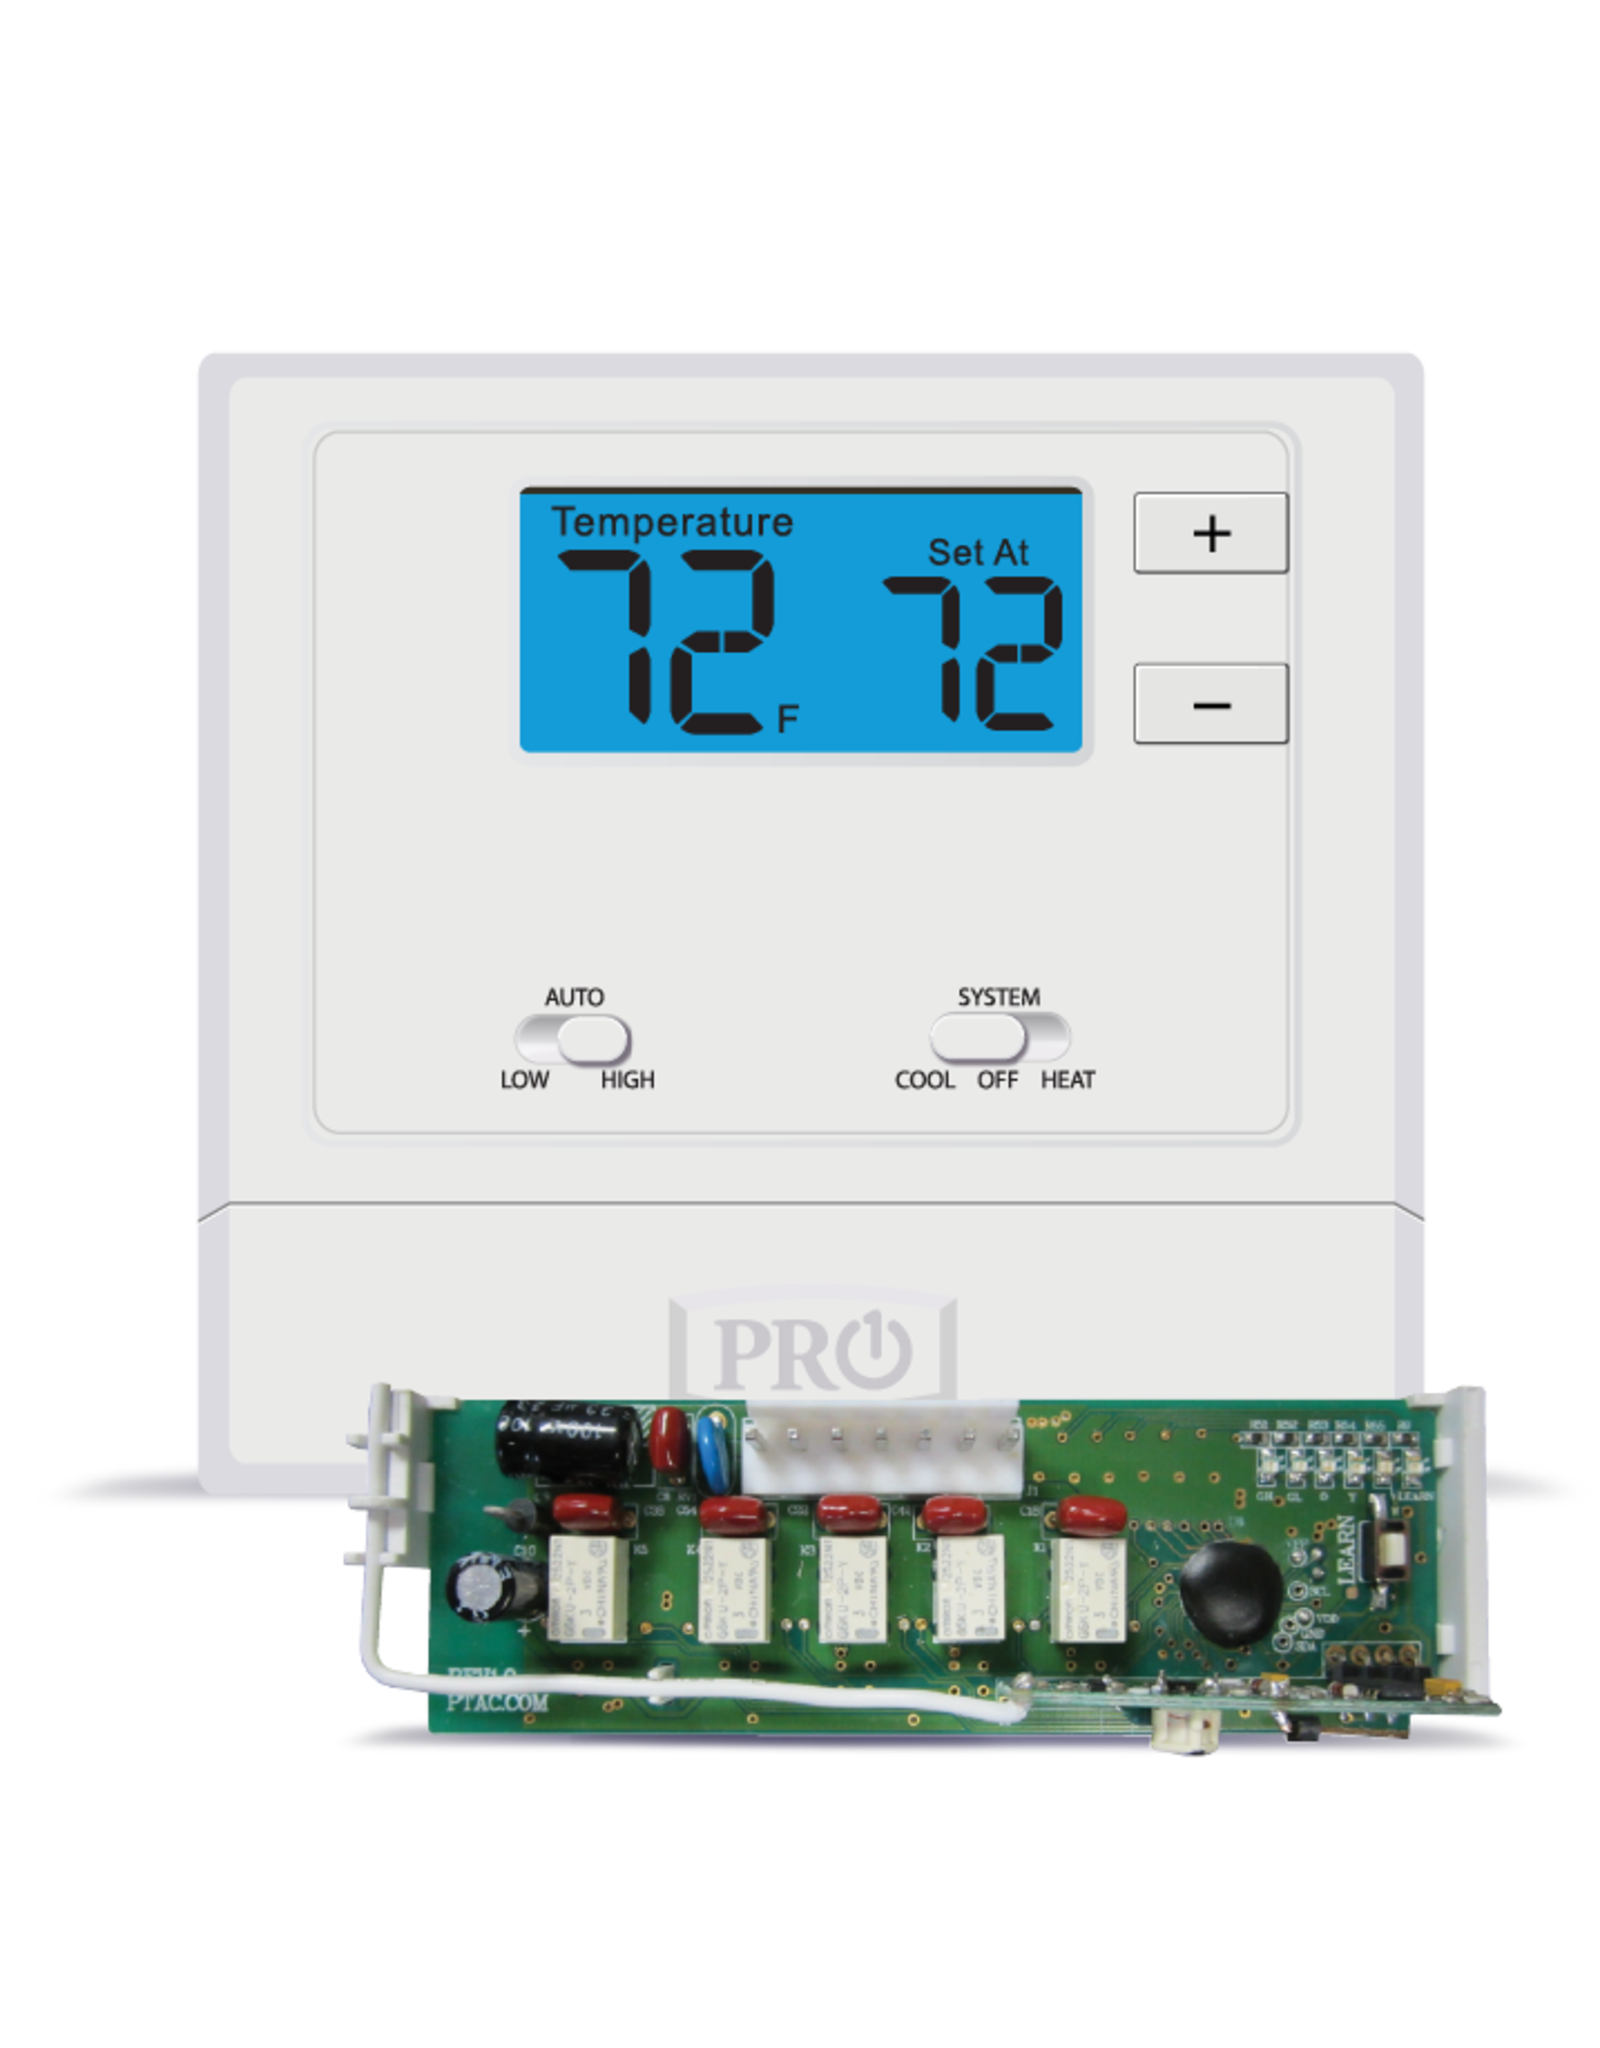 Pro1 T631W-2 Wireless PTAC Non-Programmable T-stat, Heat-Pump or Conventional